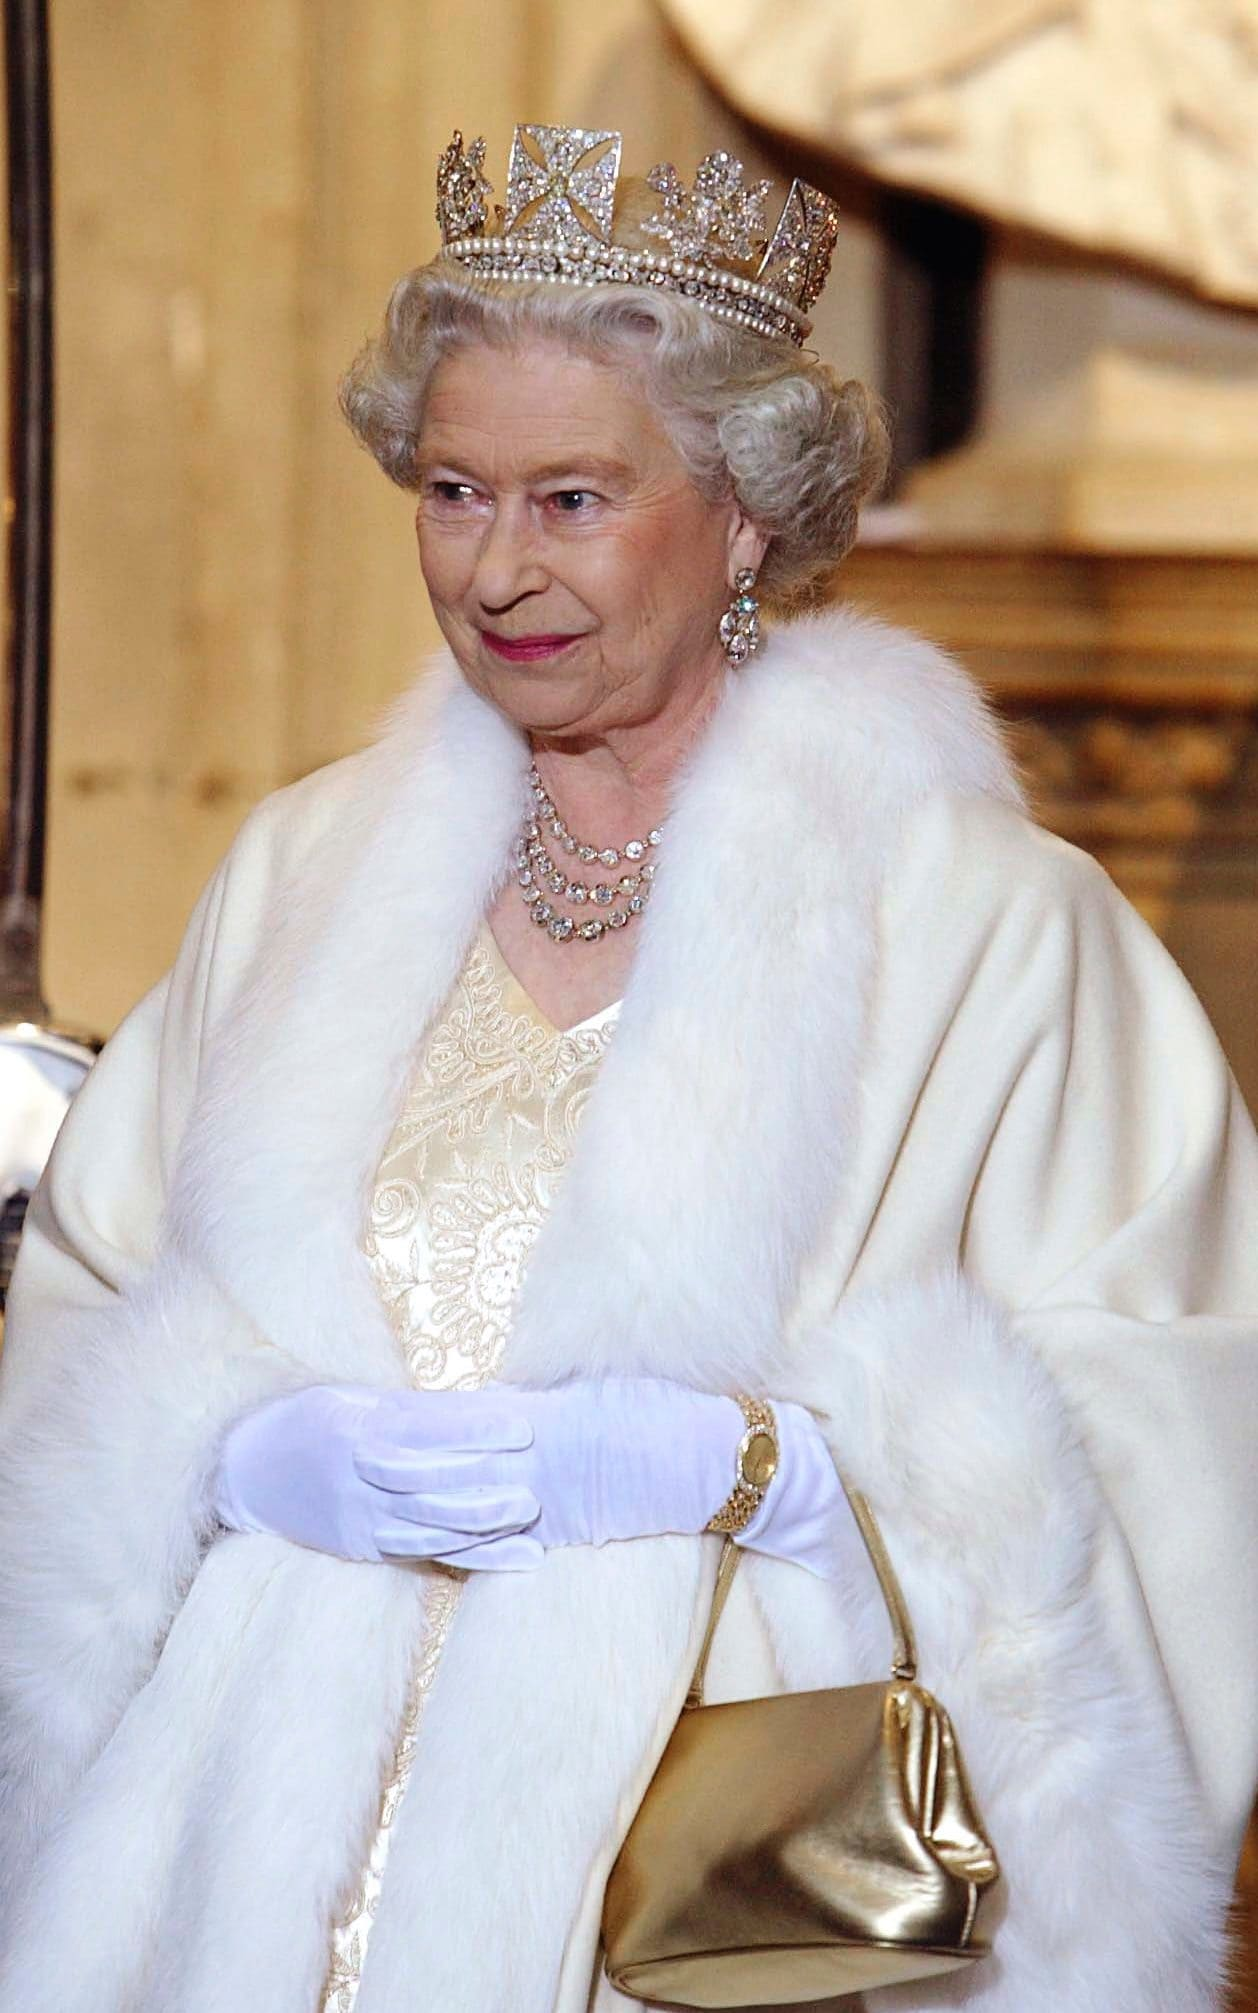 95830459_LONDON_UNITED_KINGDOM_-_NOVEMBER_13__Queen_Elizabeth_Ll_Smiling_As_She_Arrives_At_The_Palac_trans++BLexaPiOBa-lbTxCY9do8RyRWR8tXKJRXAf-JOaUjFA.jpg